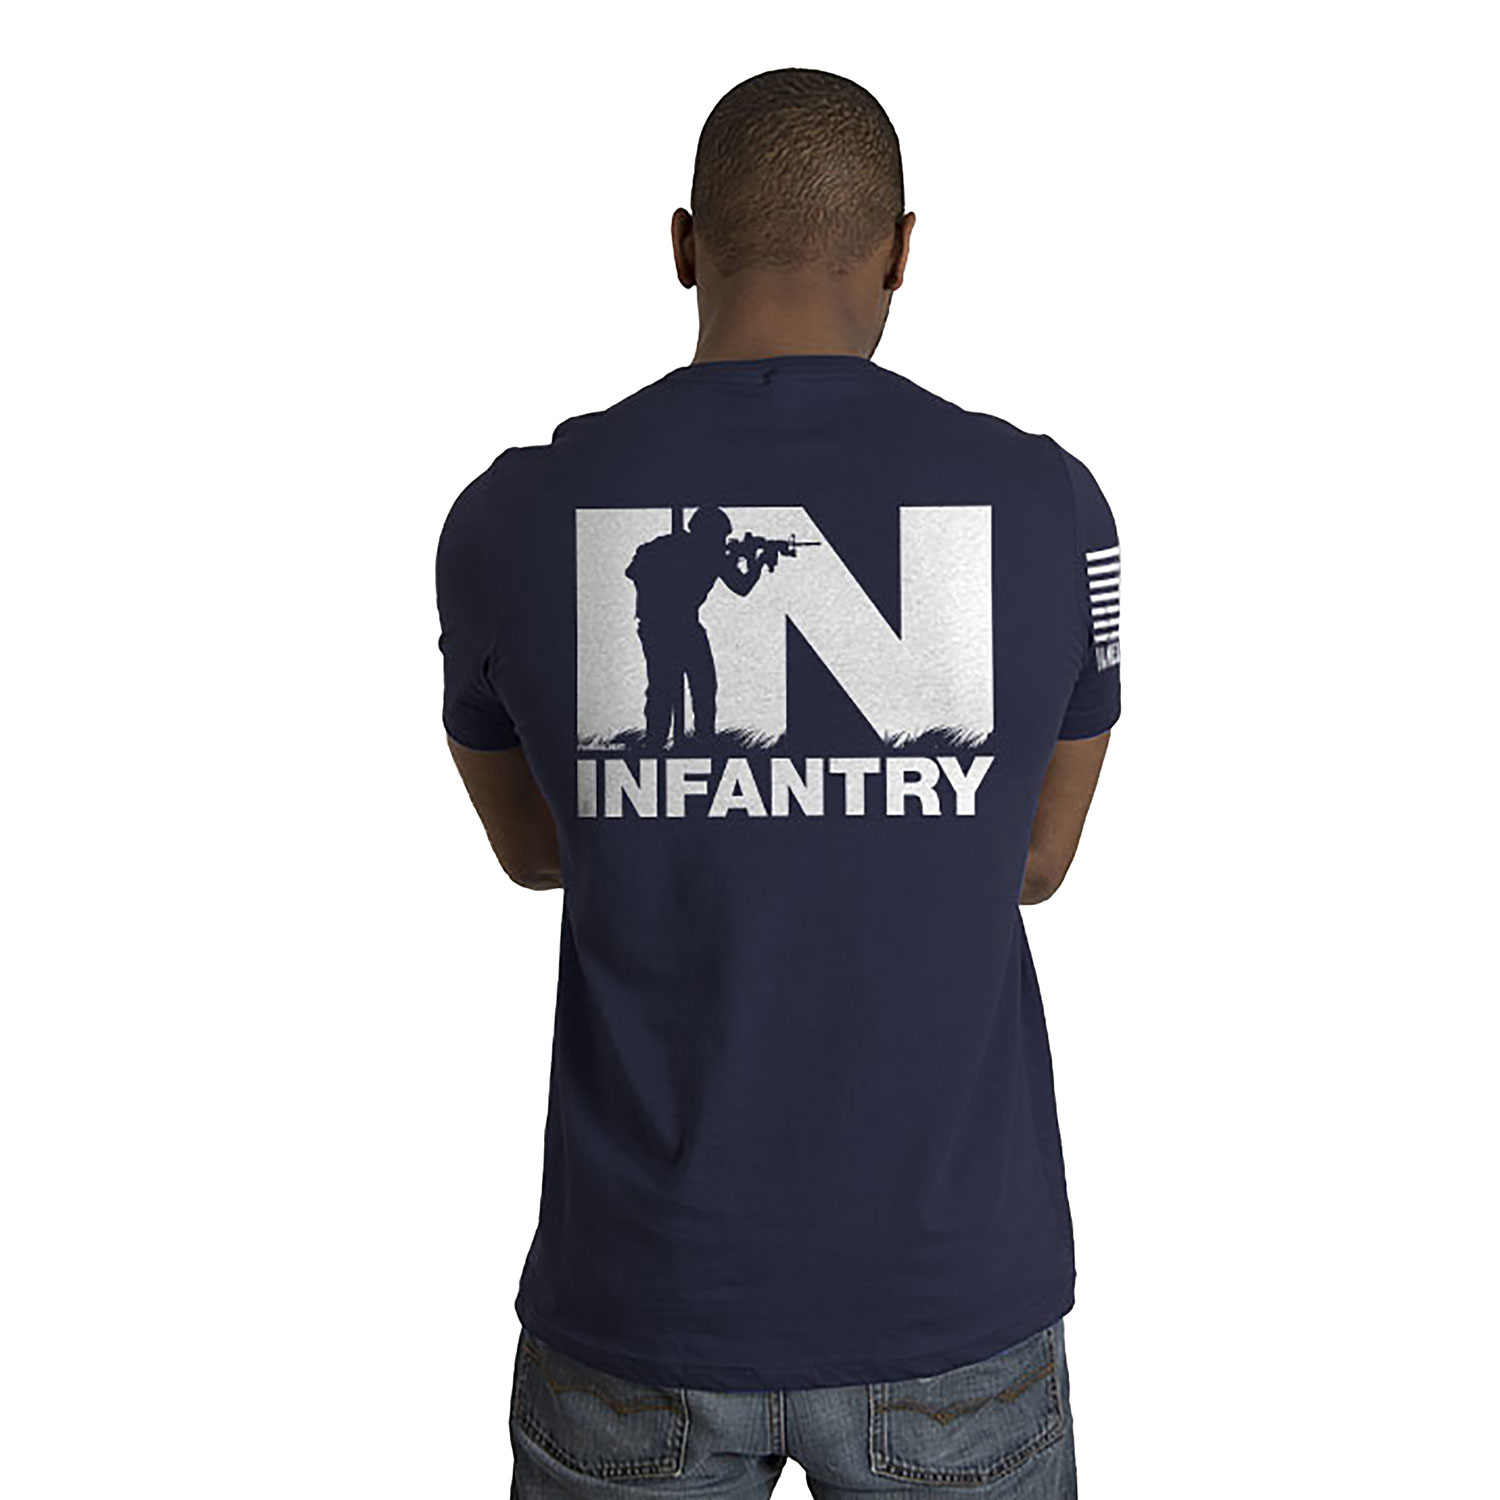 Nine Line Infantry T-Shirt